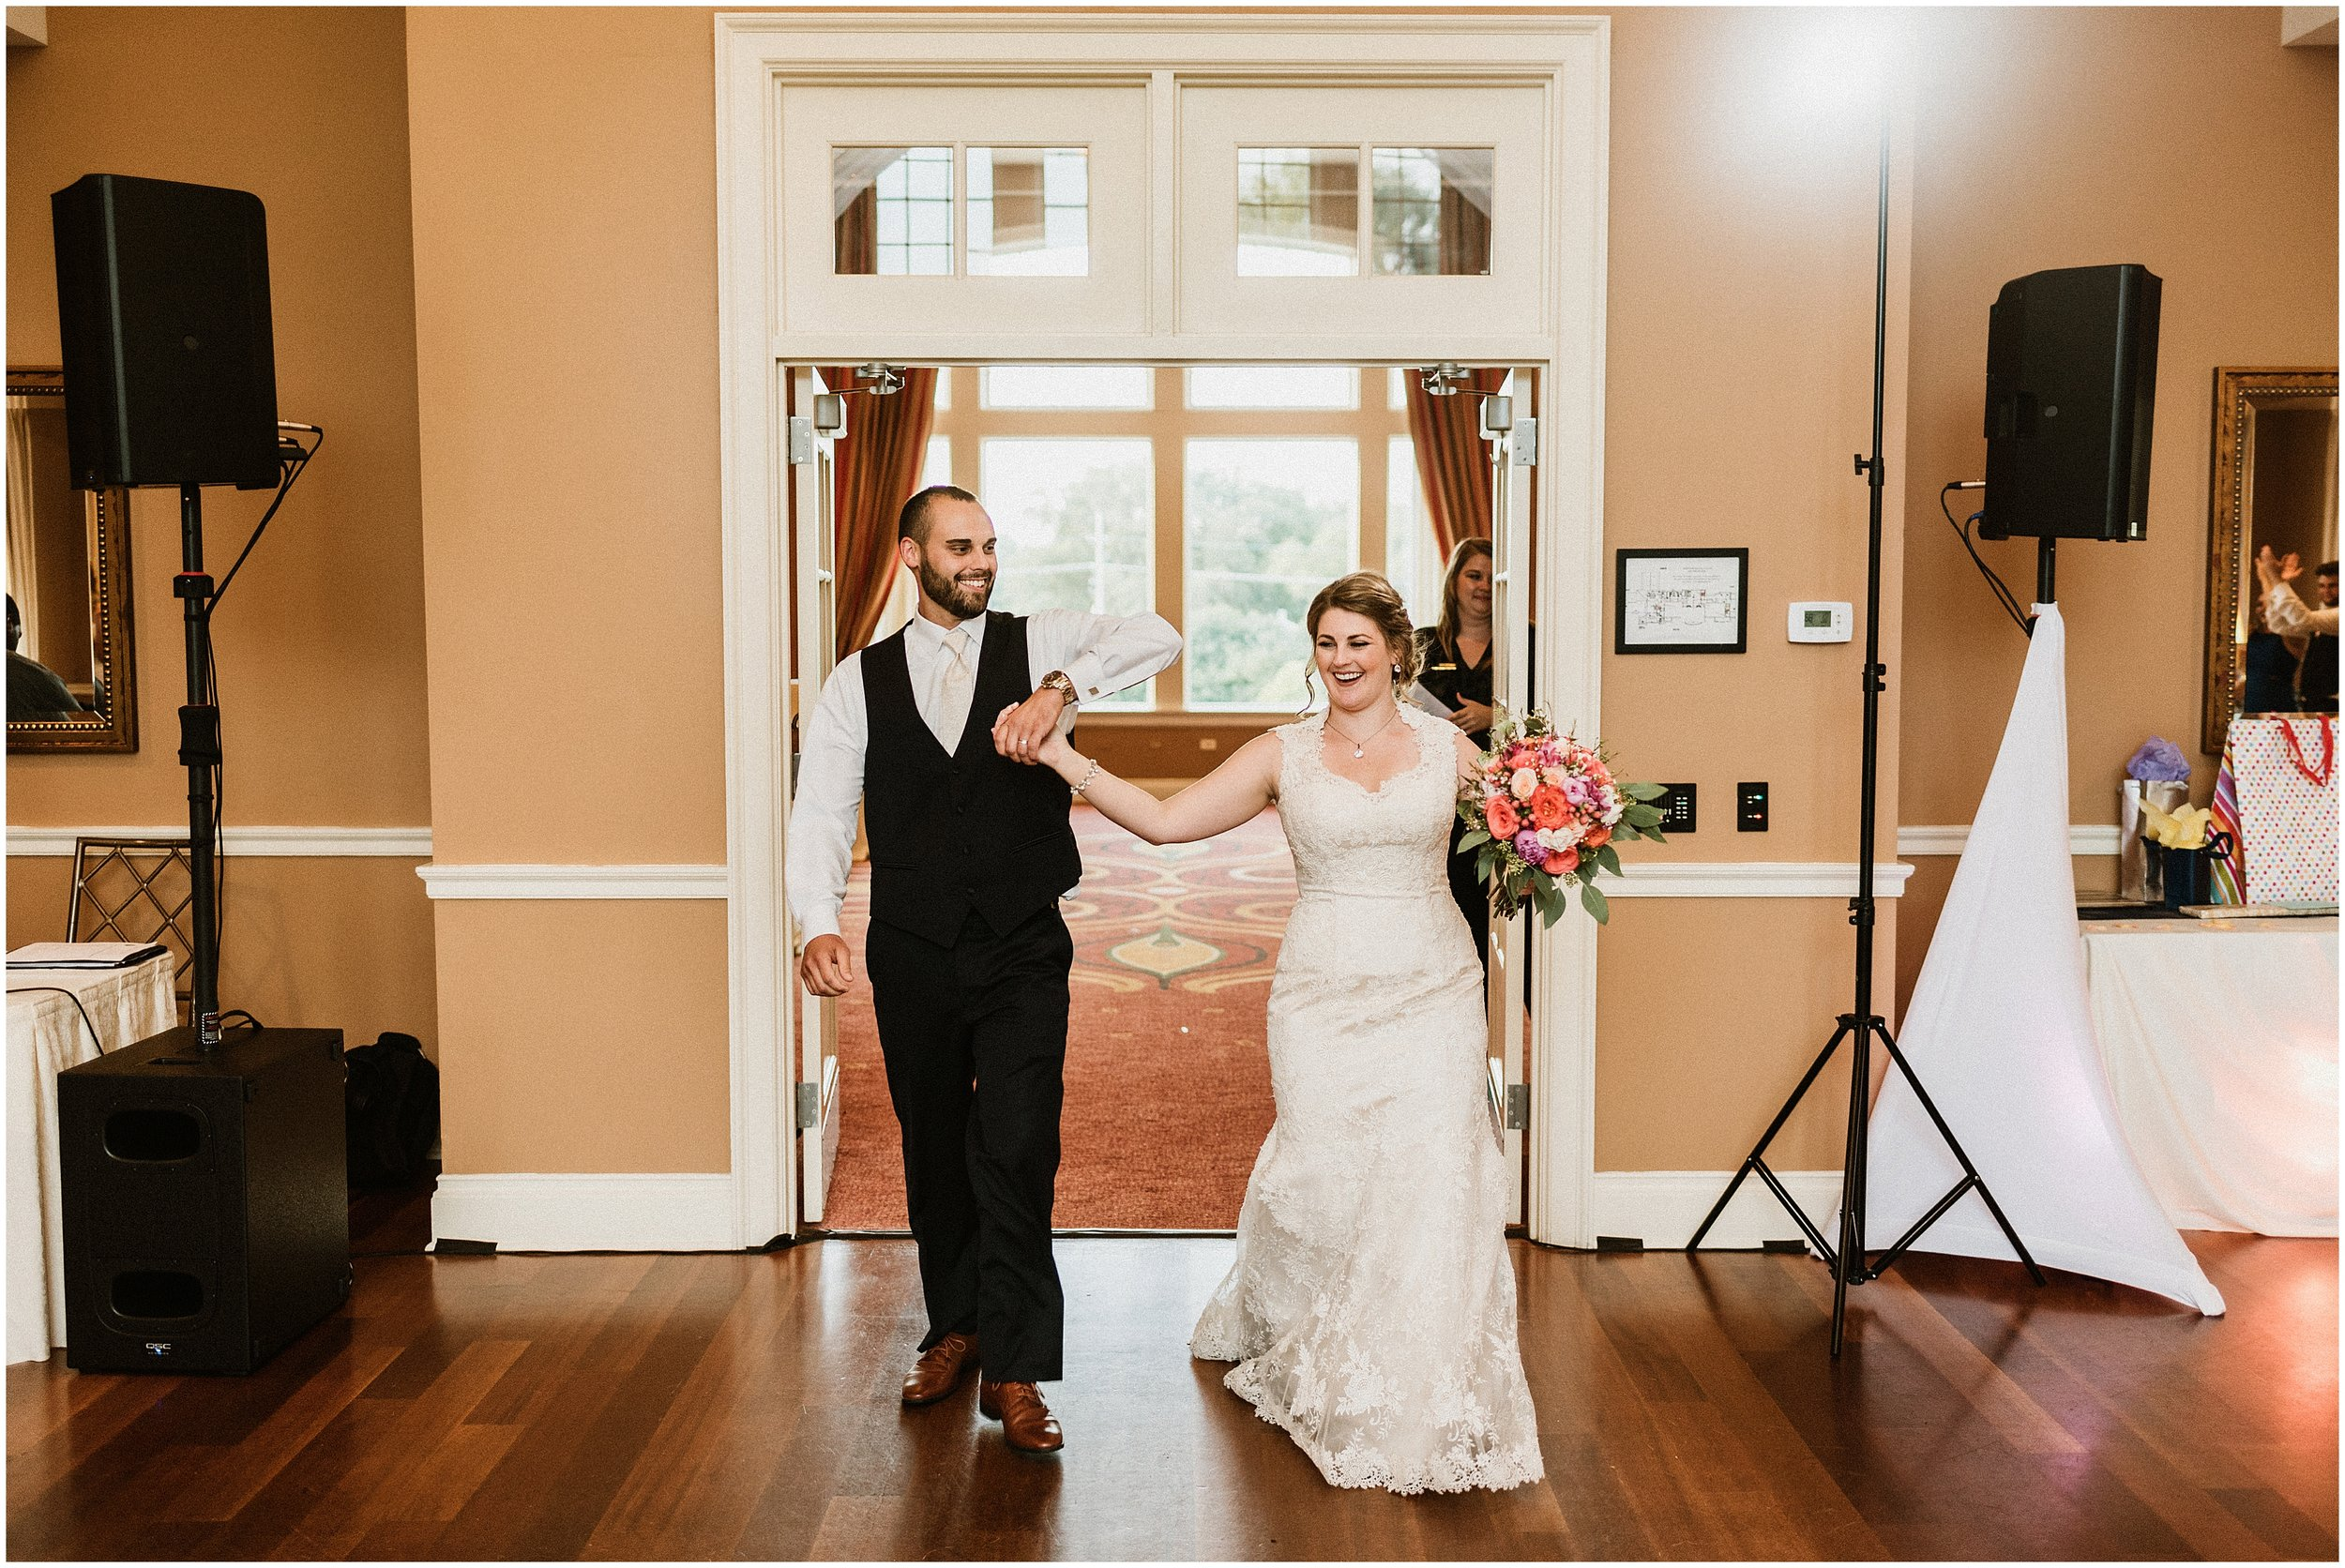 Jenny and Mike | Classic Summer Wedding | Arrowhead Golf Course | Wheaton, IL | Naperville Wedding Photographer